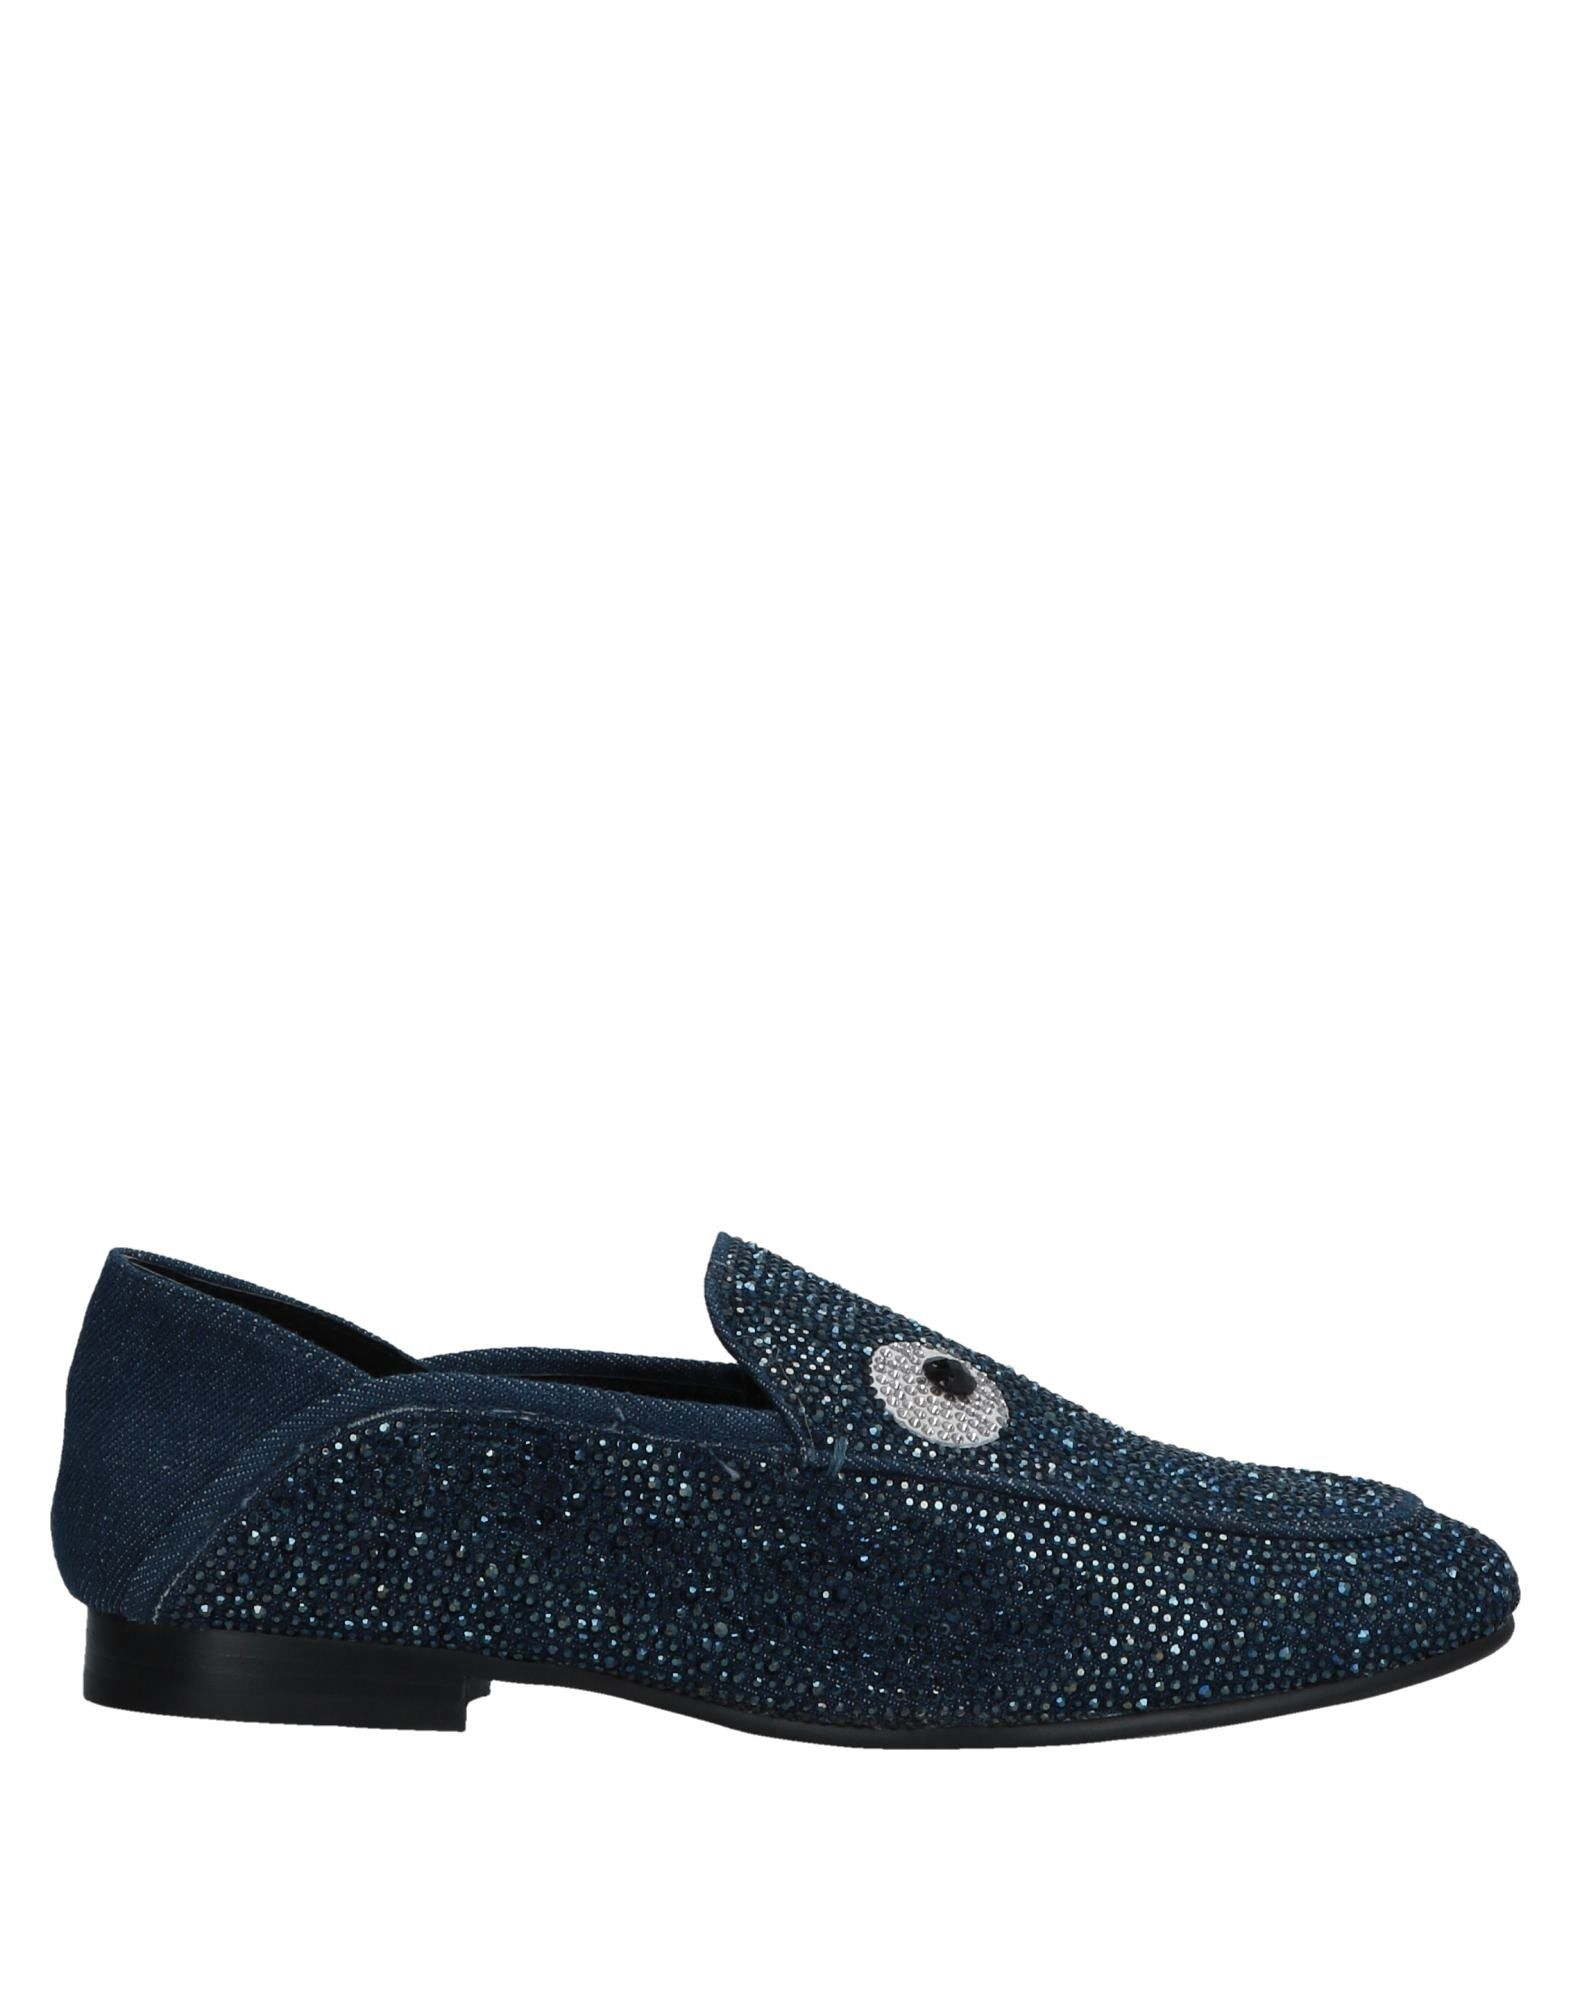 Lola Cruz Loafers - Women on Lola Cruz Loafers online on Women  United Kingdom - 11563913KI f05a61